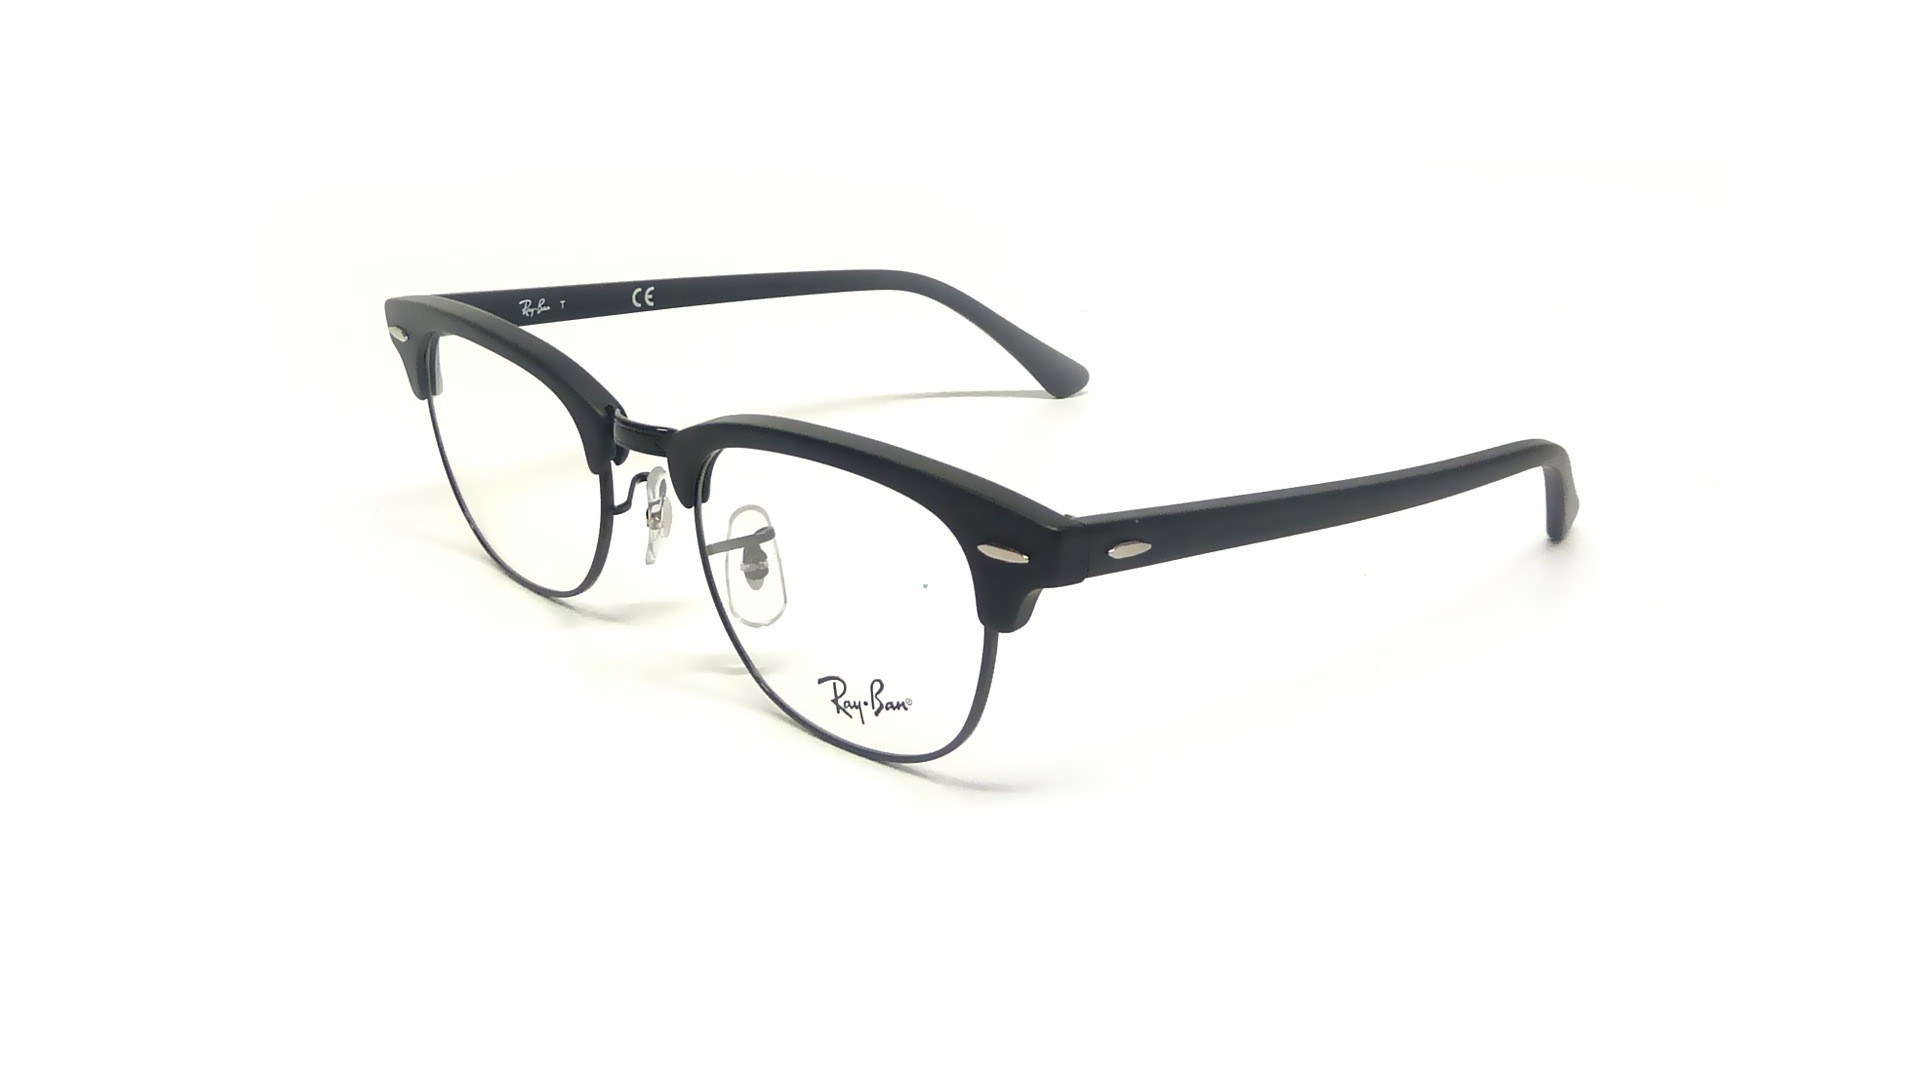 Ray-Ban Clubmaster Black RX5154 RB5154 2077 51-21 Medium   Visiofactory 333024c9e2c6